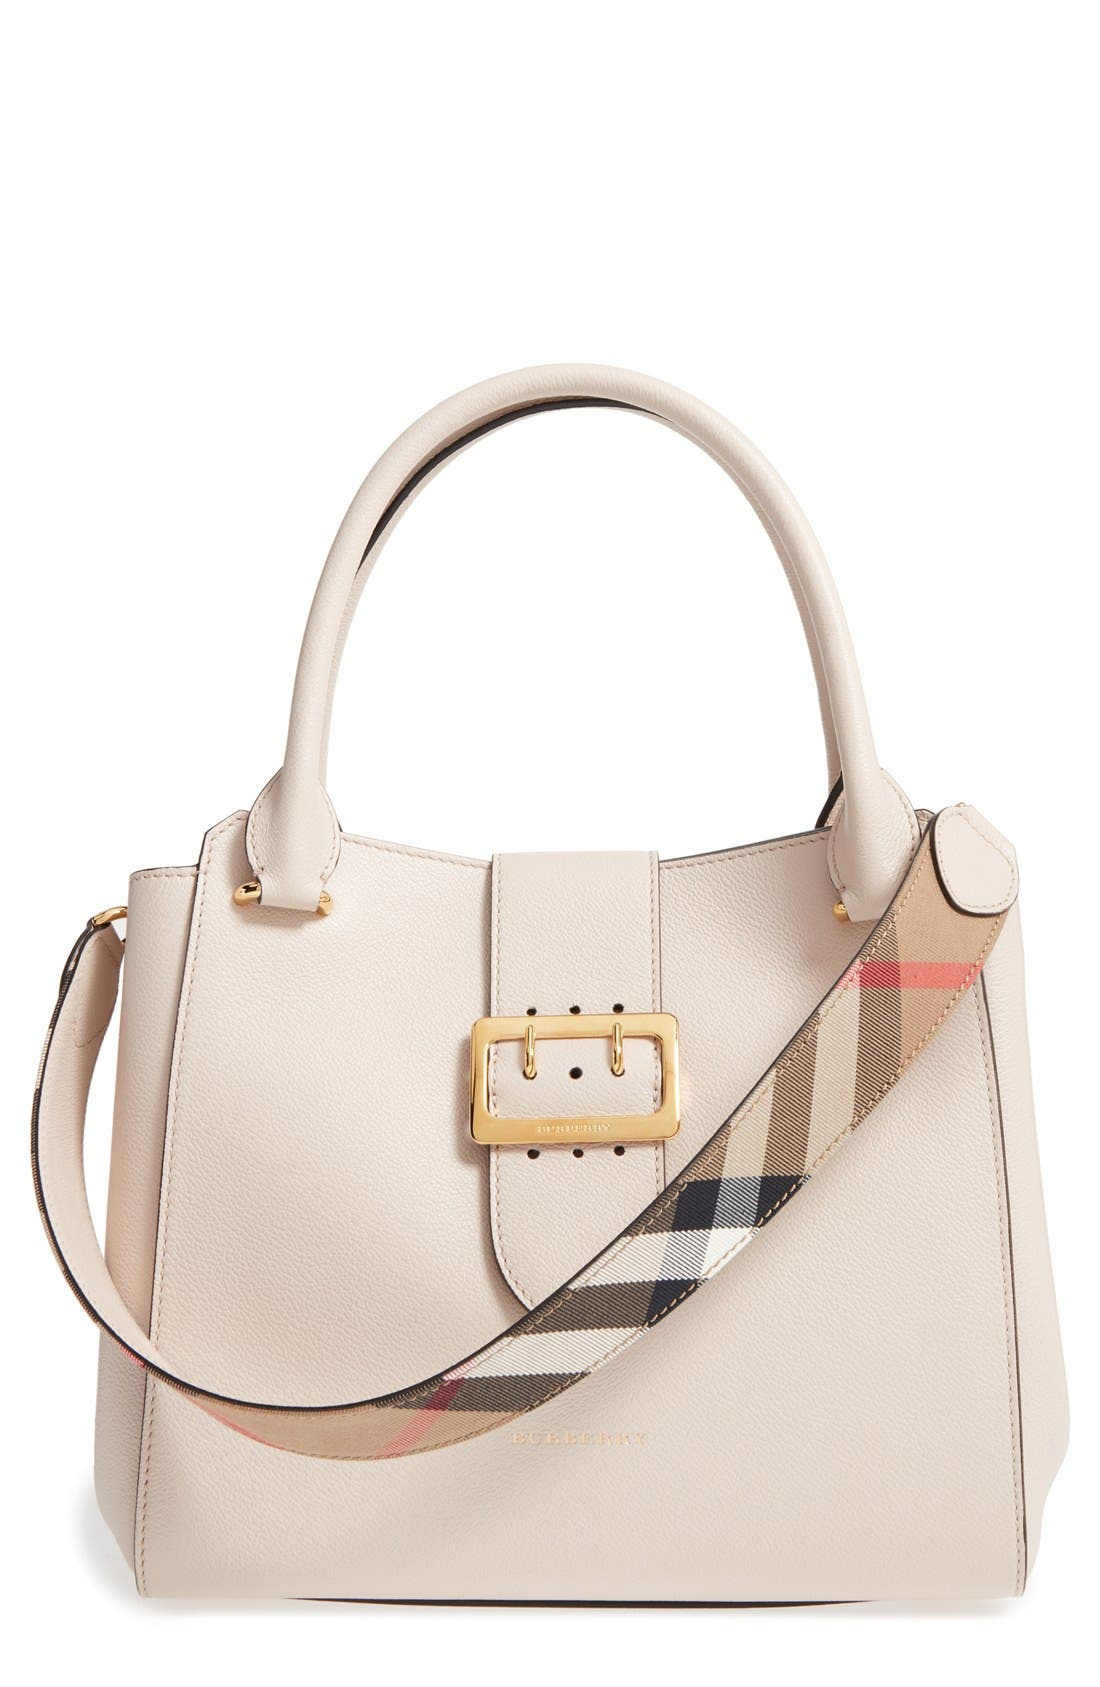 Main Image - Burberry Medium Buckle Leather Satchel